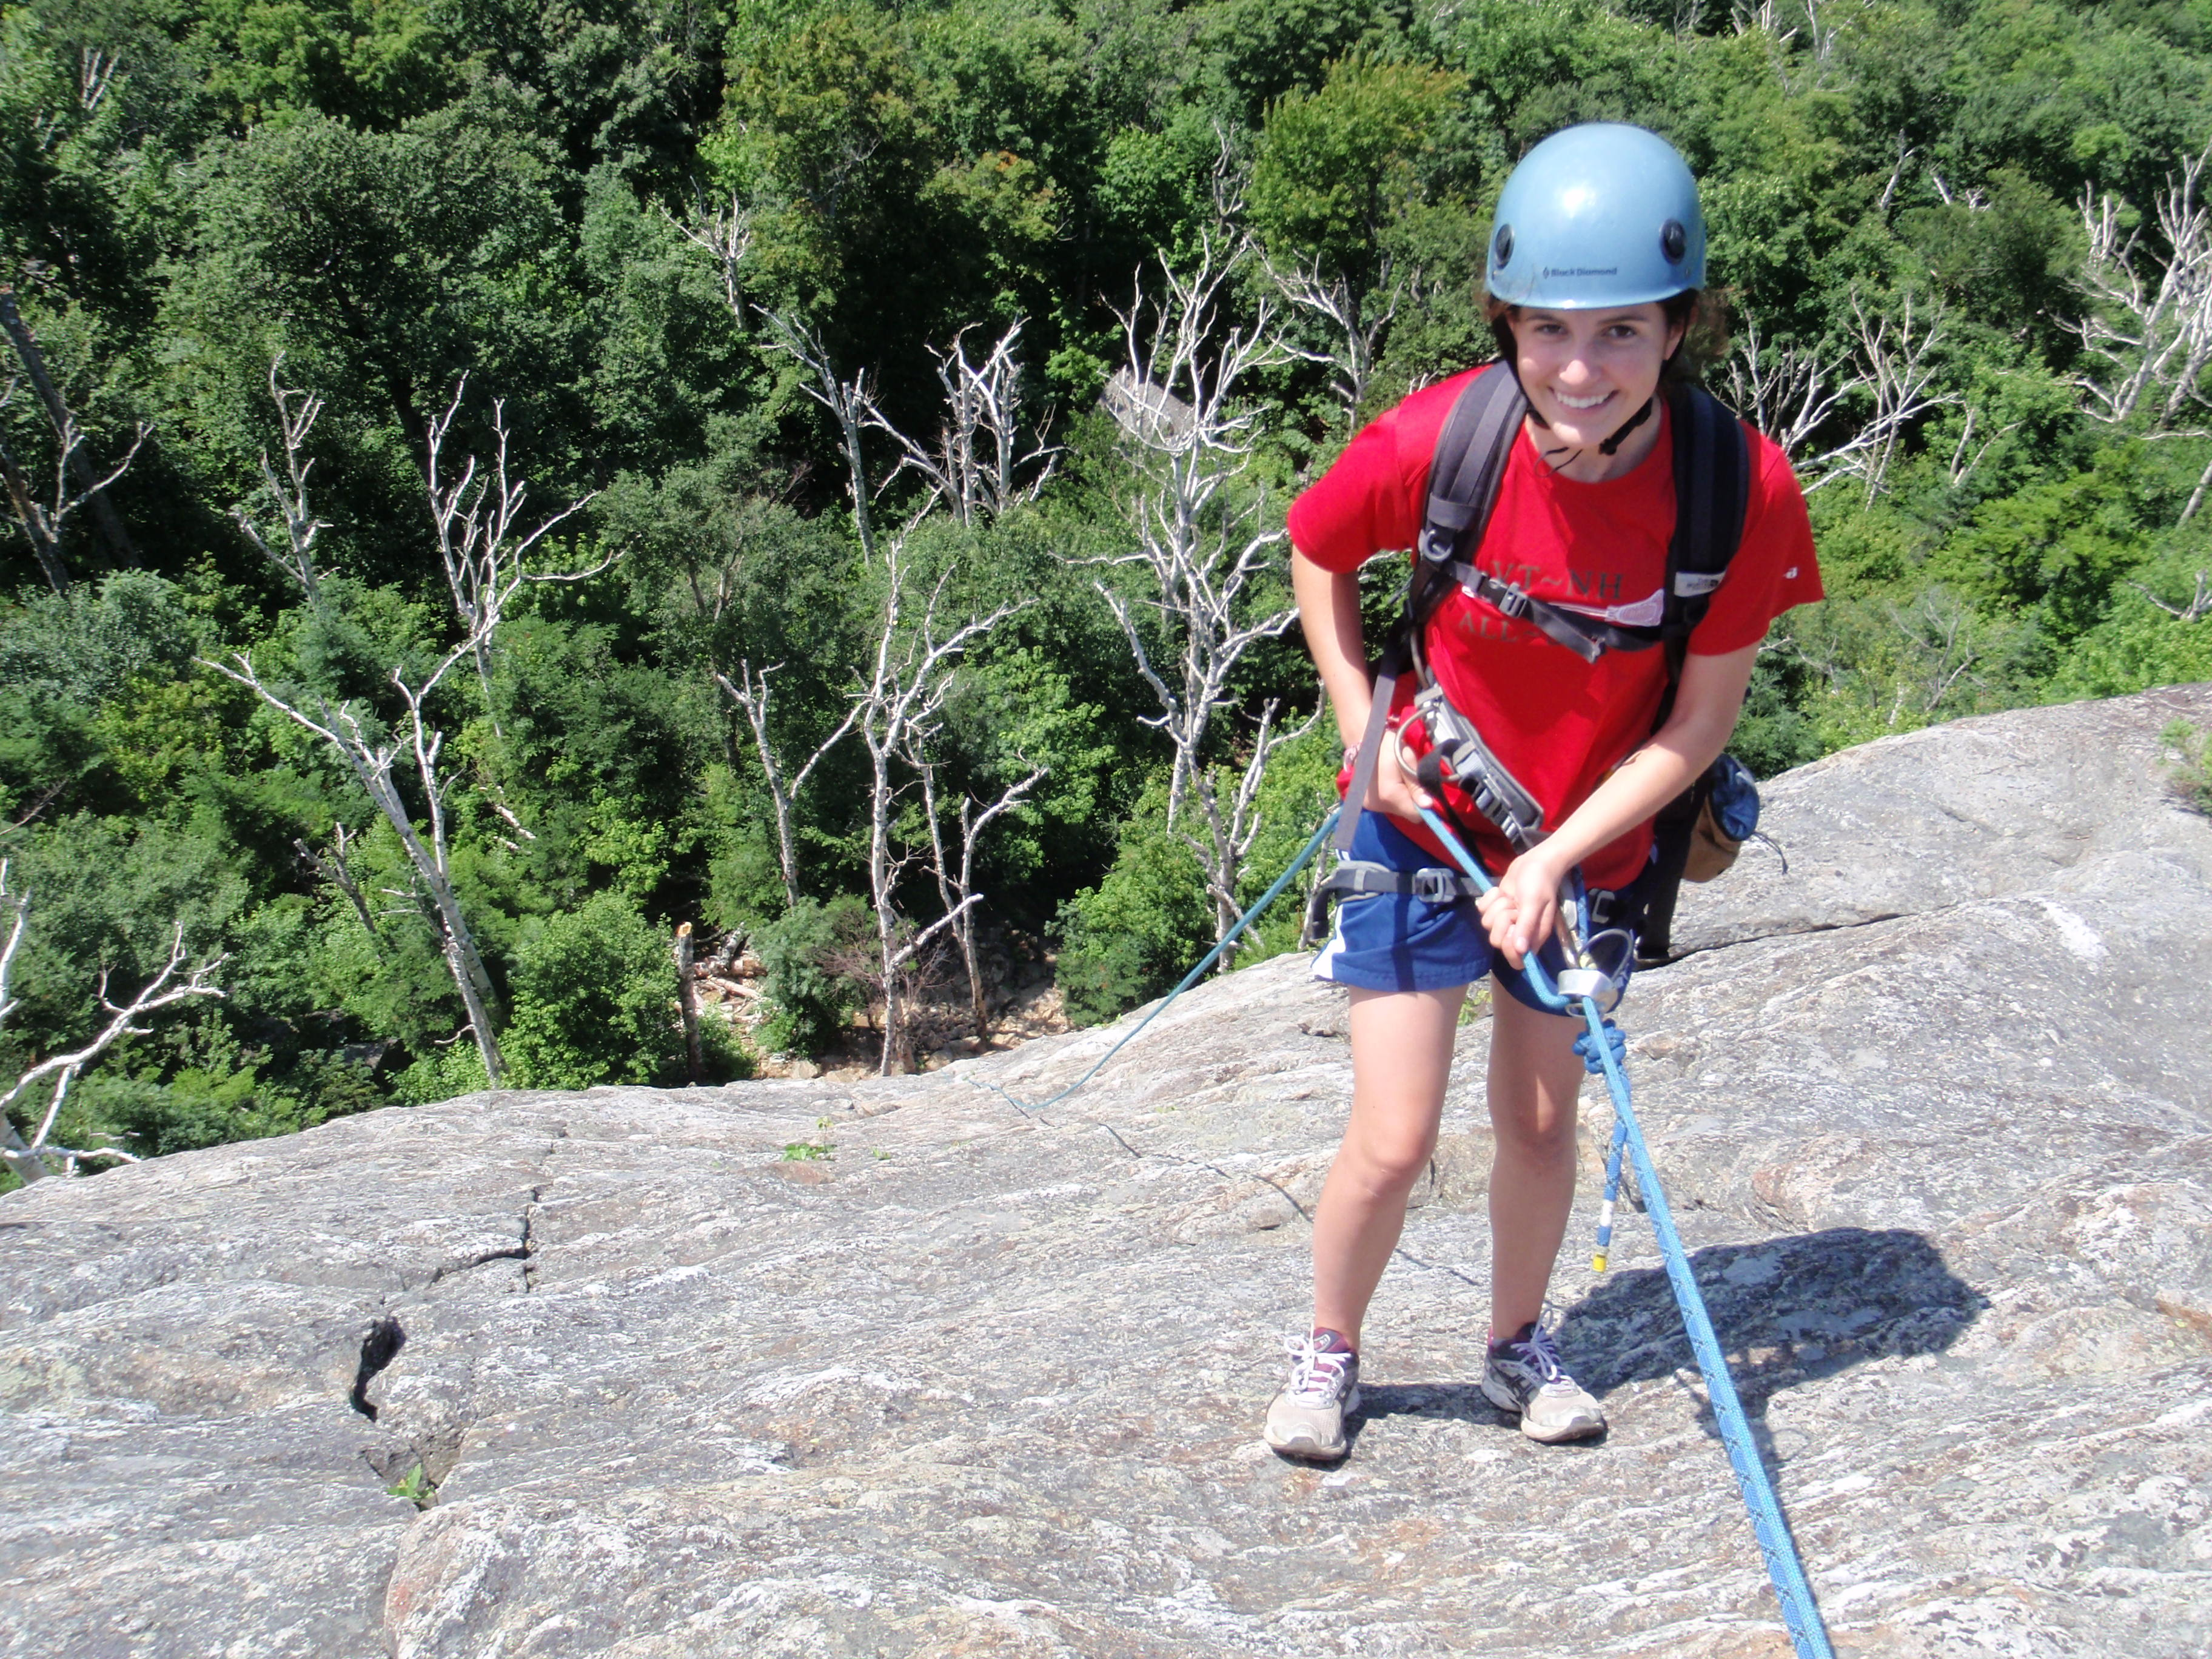 We finished the day rappelling the 165 foot West Face we had climbed that morning...